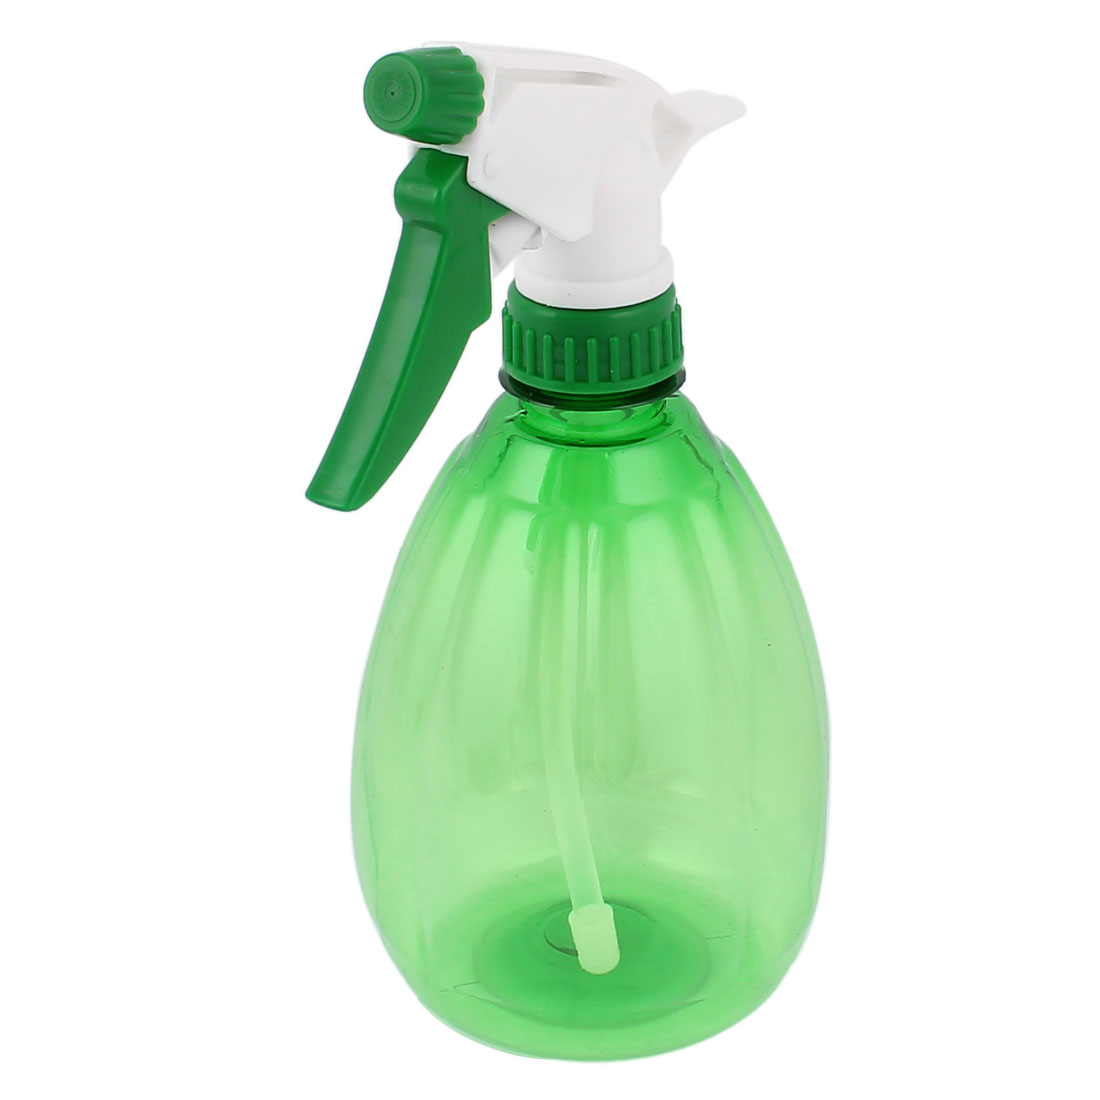 Handheld Makeup Nozzle Head Water Sprayer Mist Spray Bottle Green 500ml